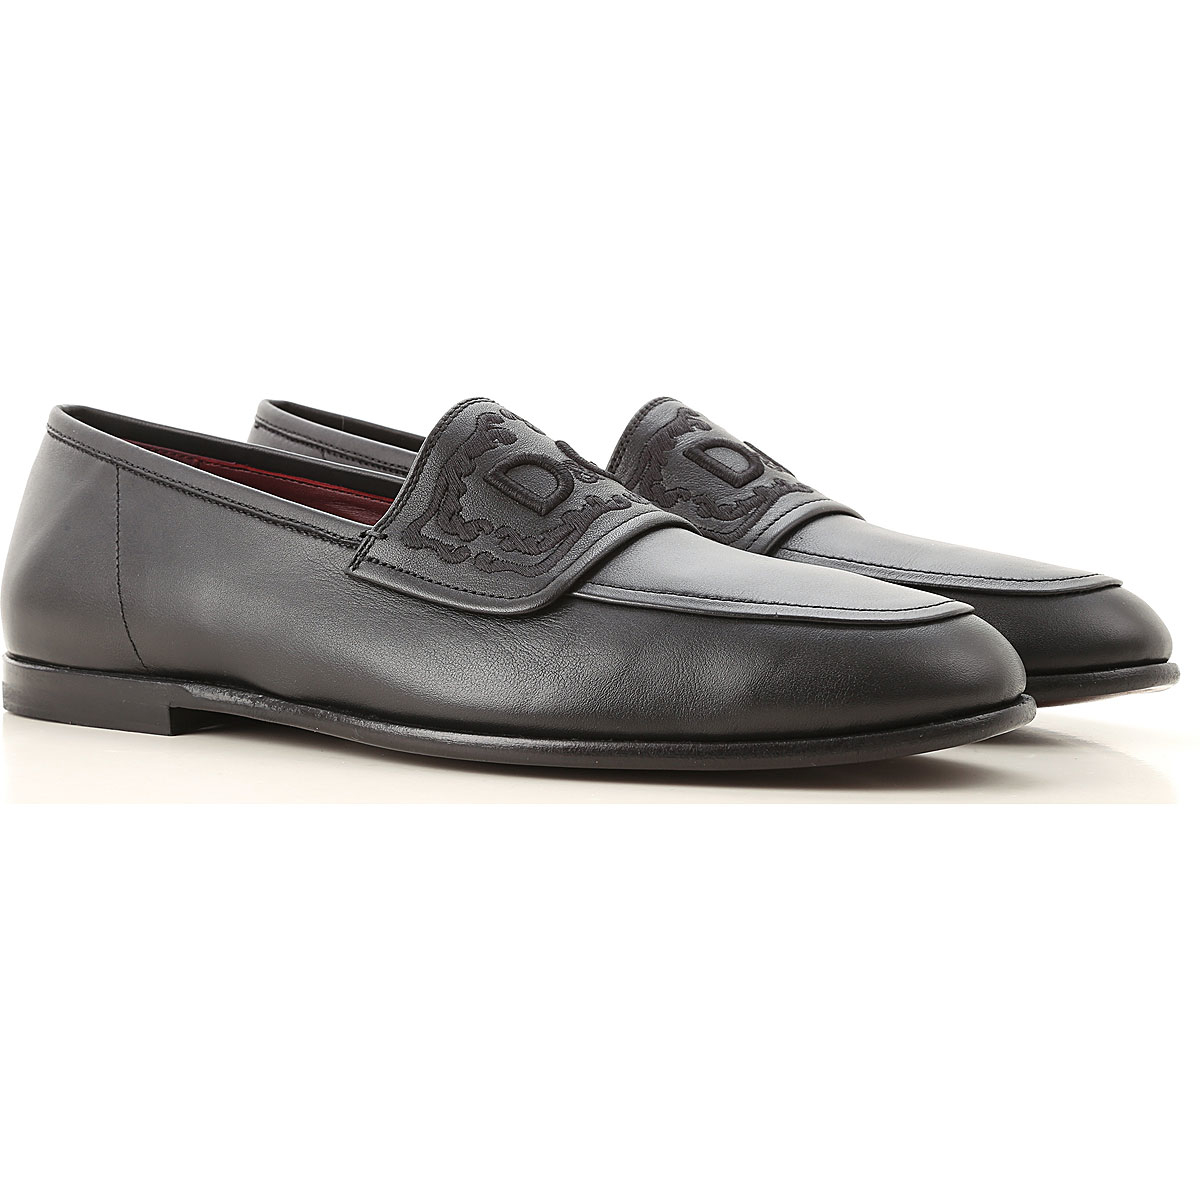 Dolce & Gabbana Loafers for Men Black Canada - GOOFASH - Mens LOAFERS